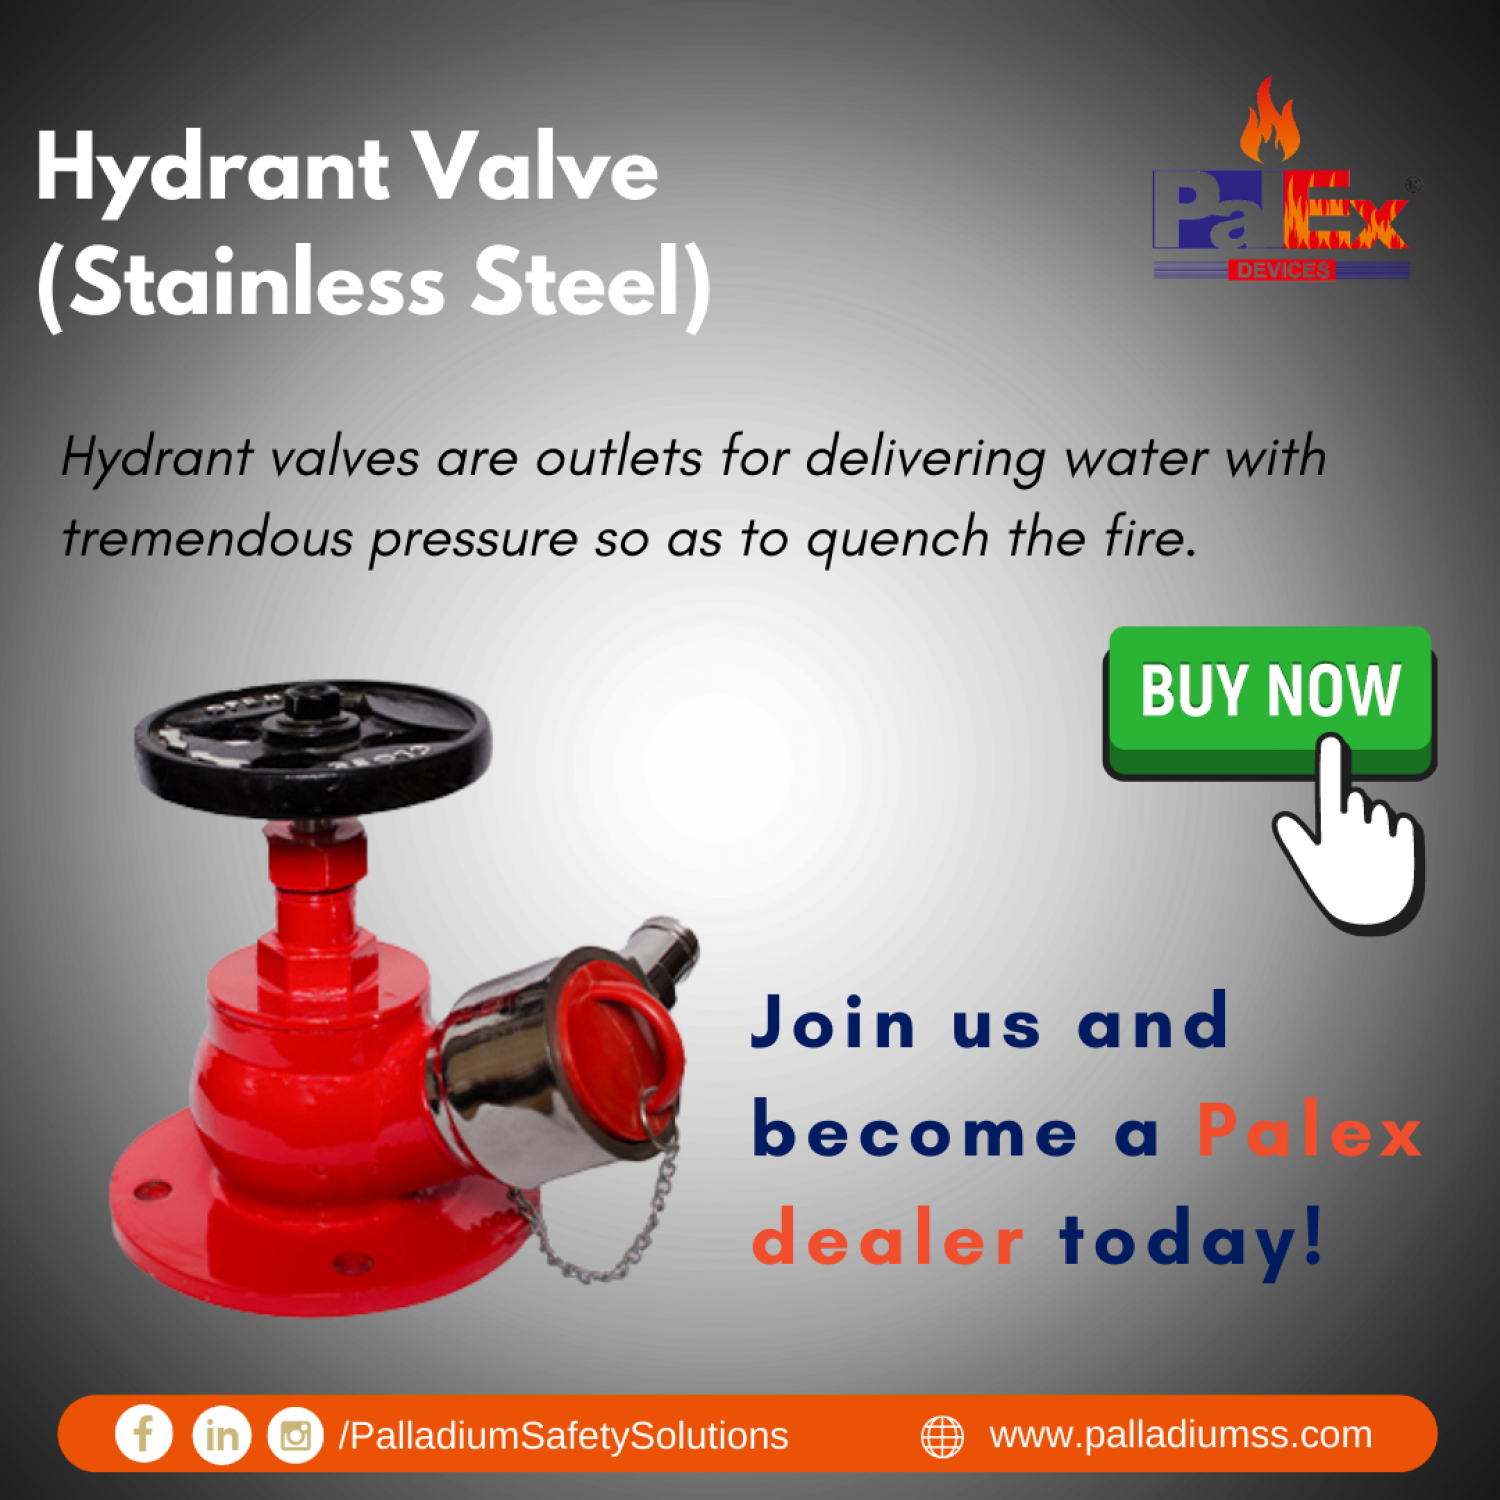 Double Headed Hydrant Manufacturer Infographic